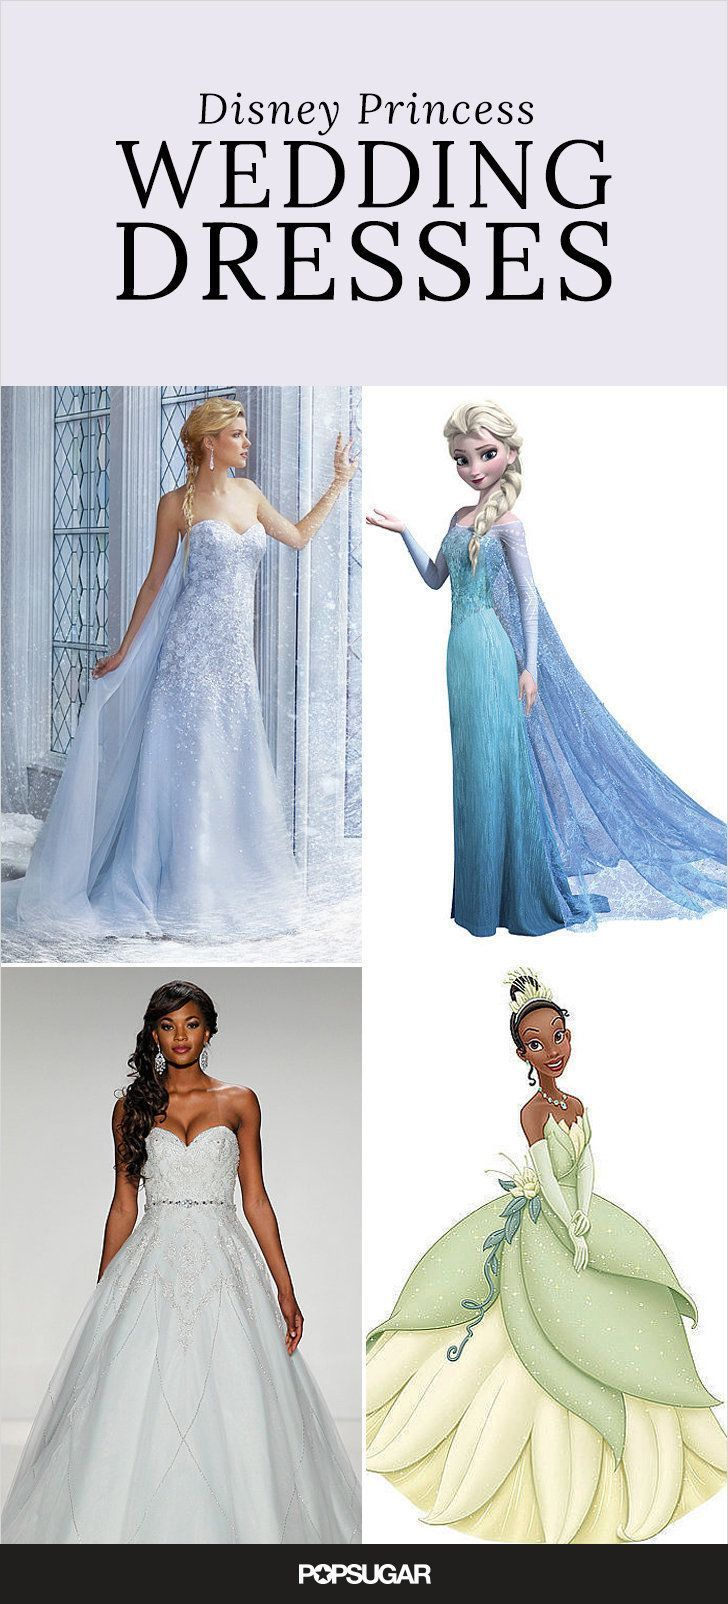 If  you love Disney and needed the perfect way to tie in your favorite princess to your wedding day, check out these Disney inspired gowns. The princess wedding of your dreams is just a dress away.